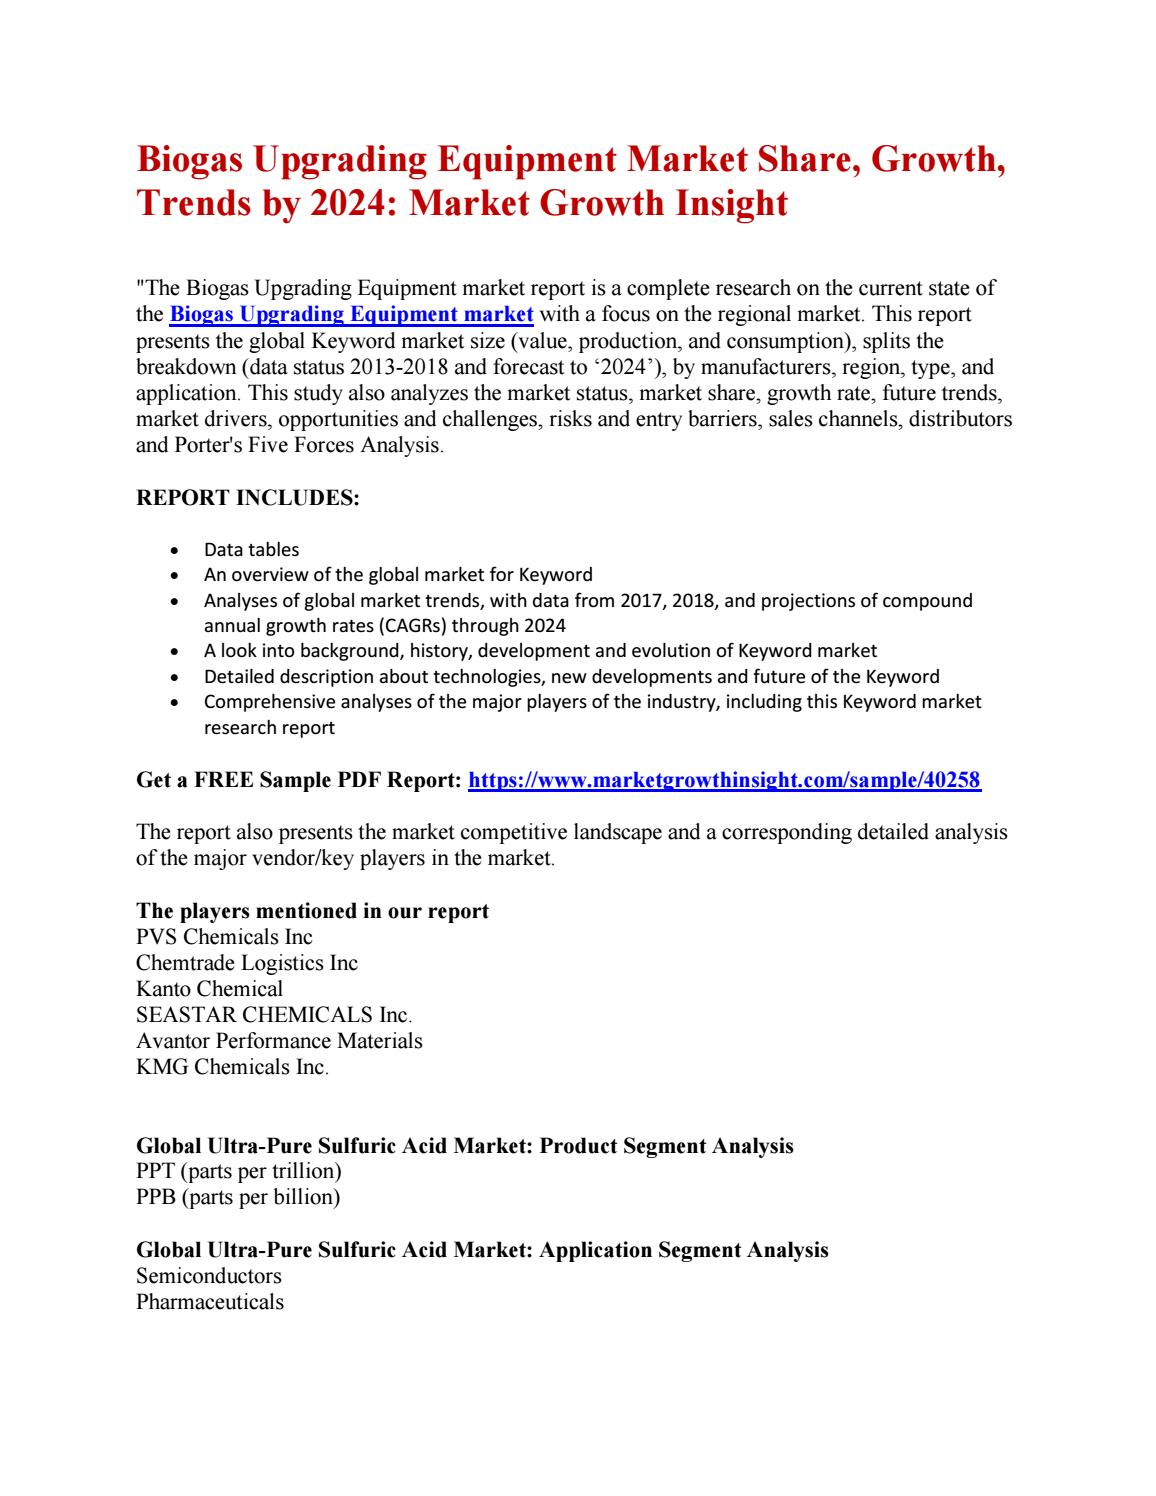 Biogas Upgrading Equipment Market Share, Growth, Trends by